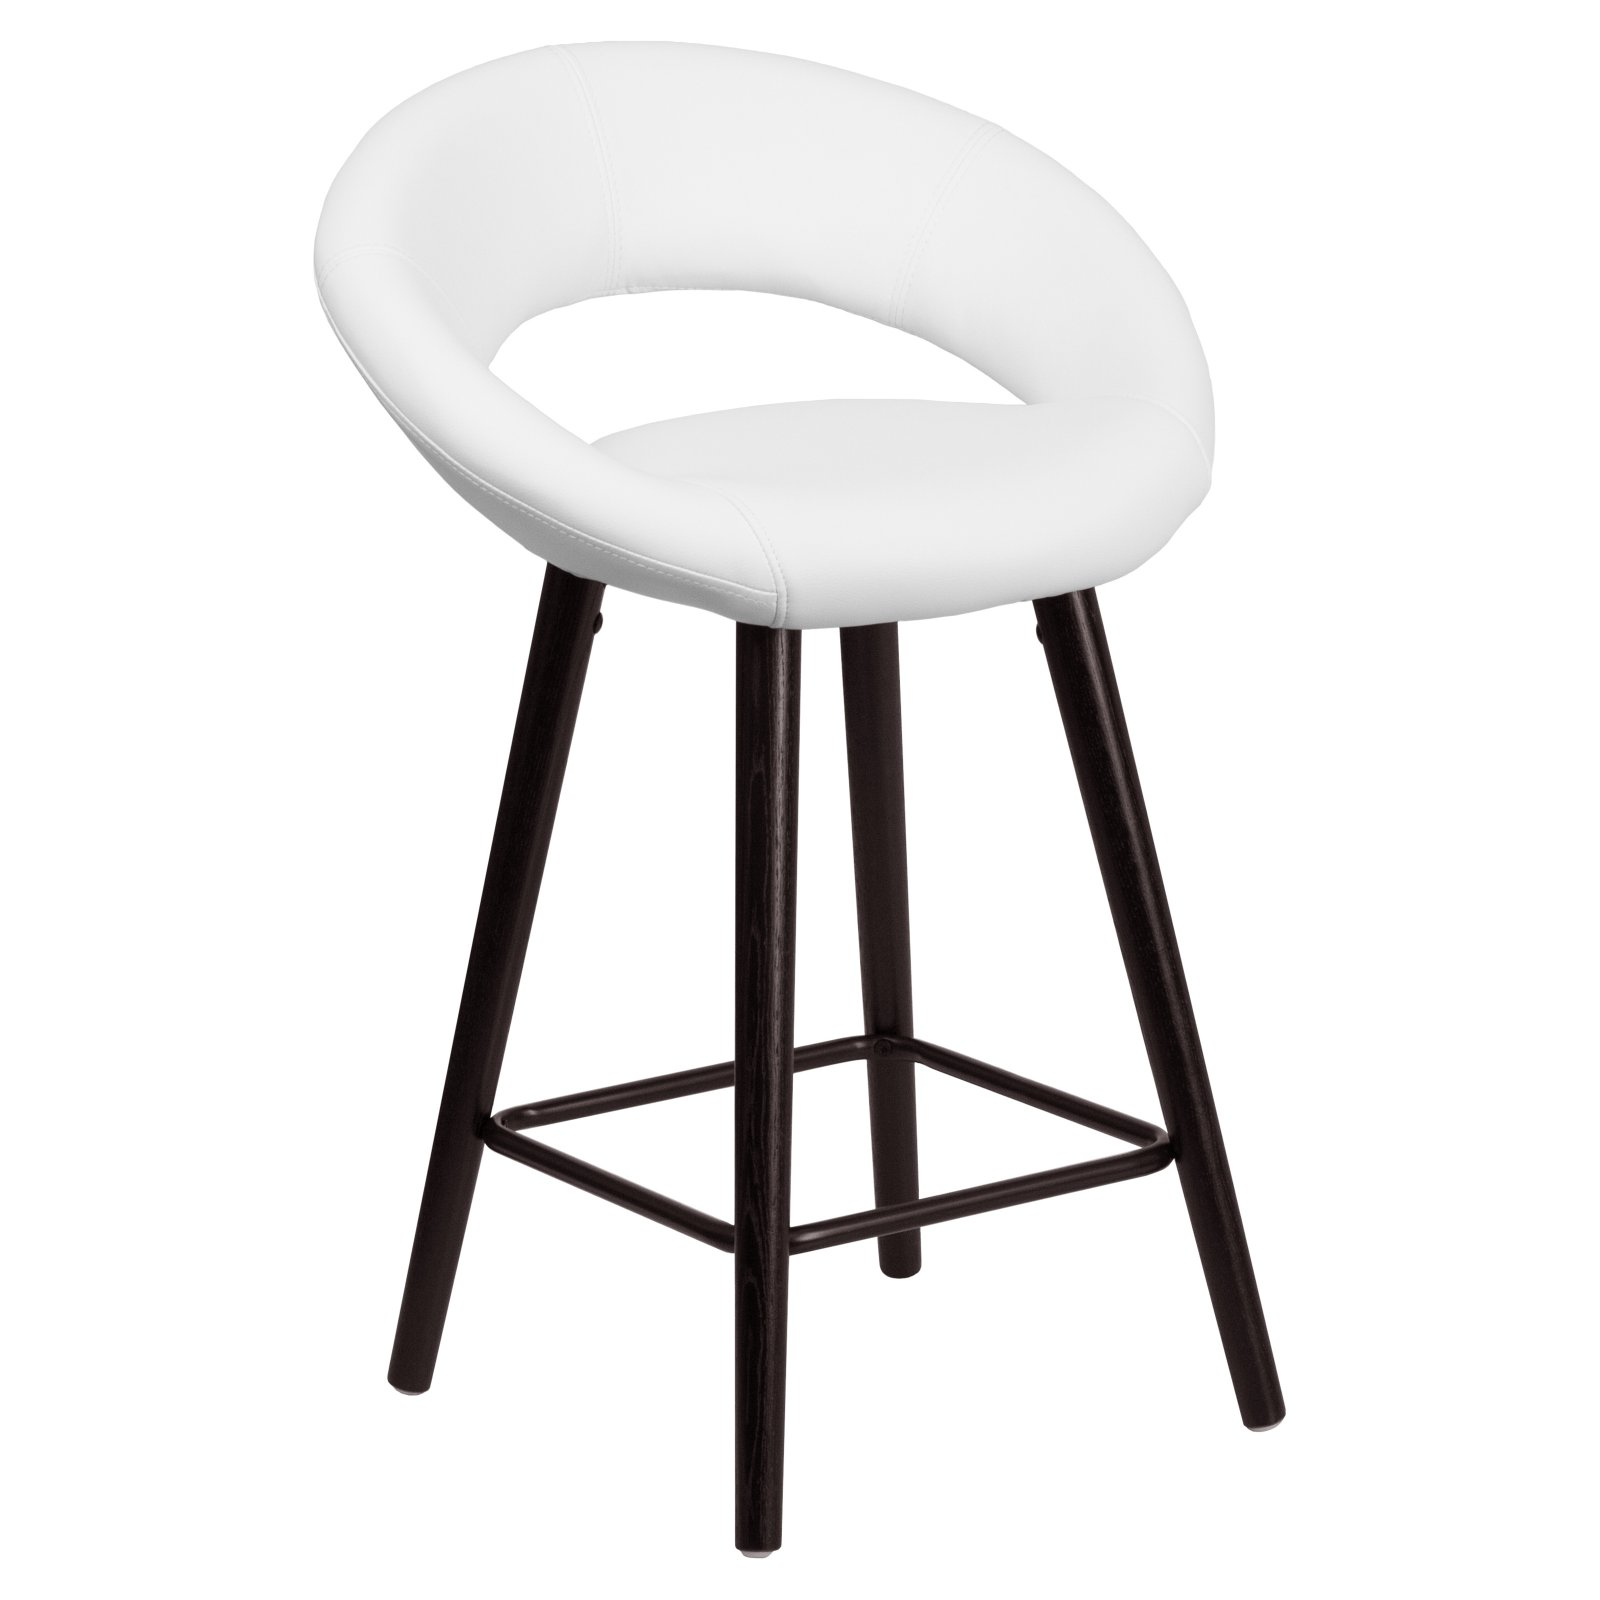 Flash Furniture Kelsey 25 in. Contemporary Rounded Keyhole Back Legged Vinyl Counter Stool